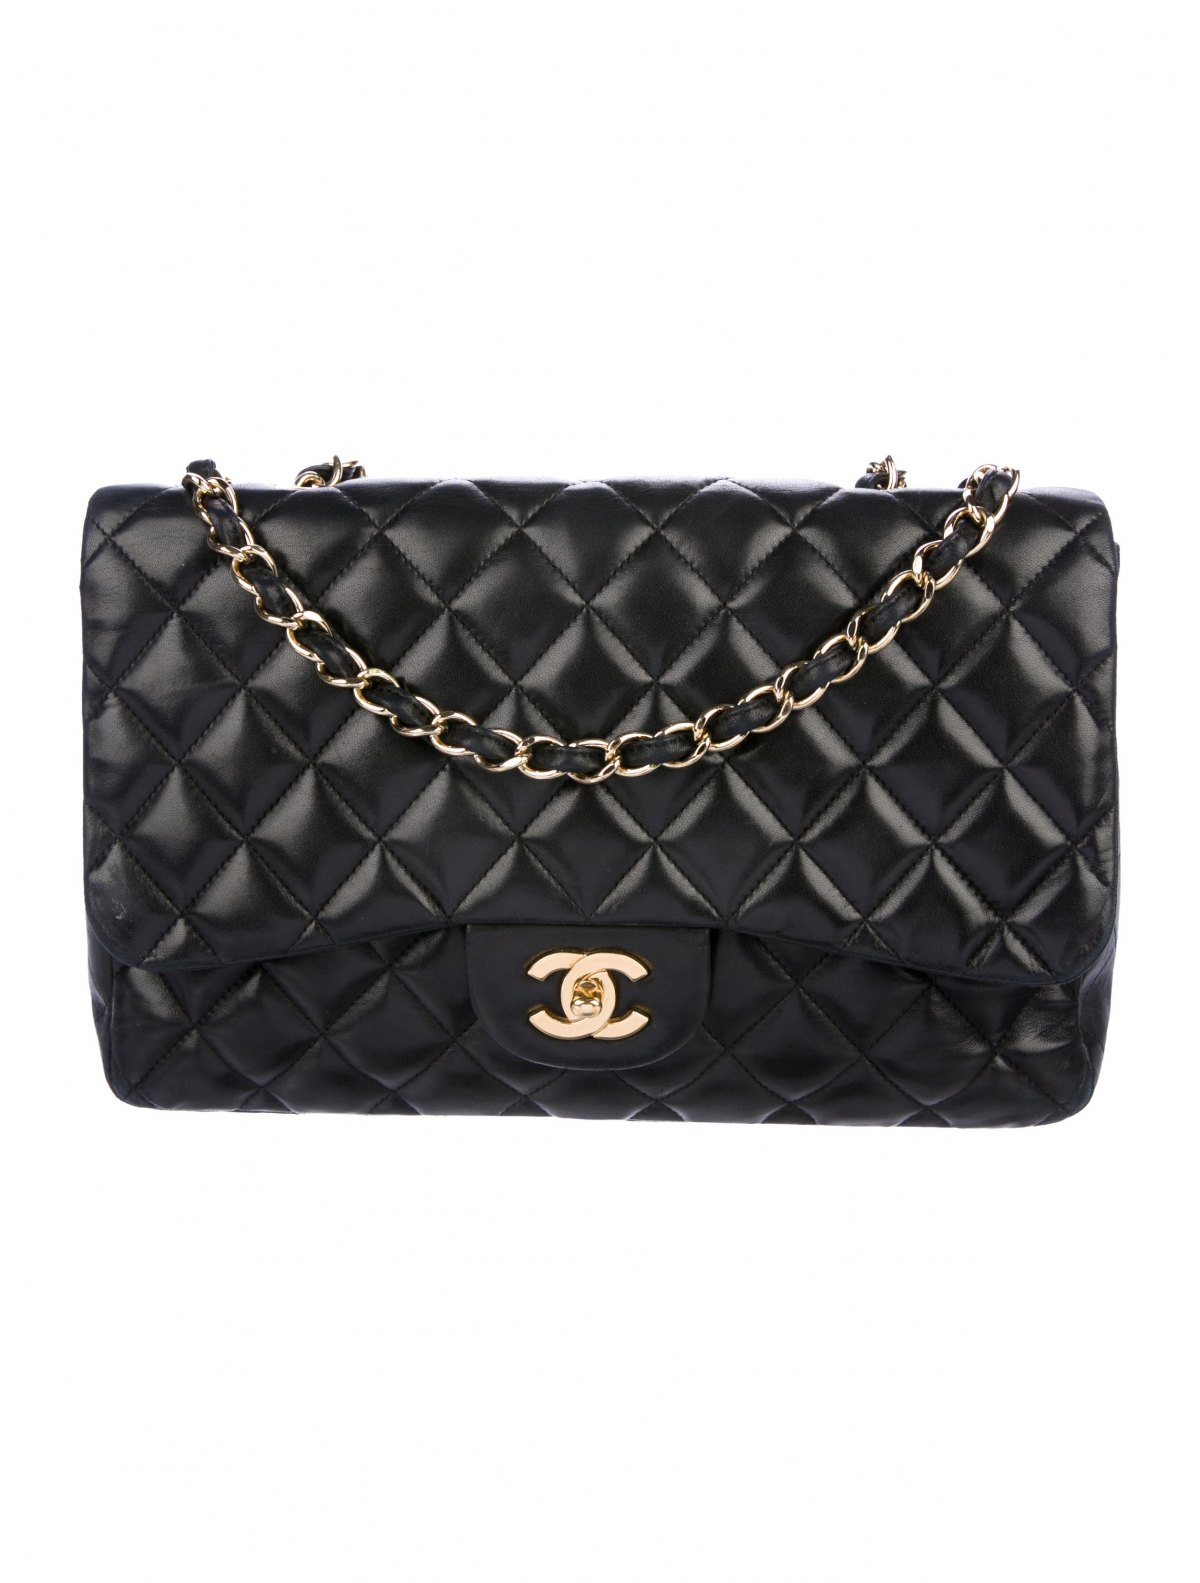 Classic Jumbo Single Flap Bag by Chanel, available on therealreal.com for $3800 Olivia Culpo Bags Exact Product